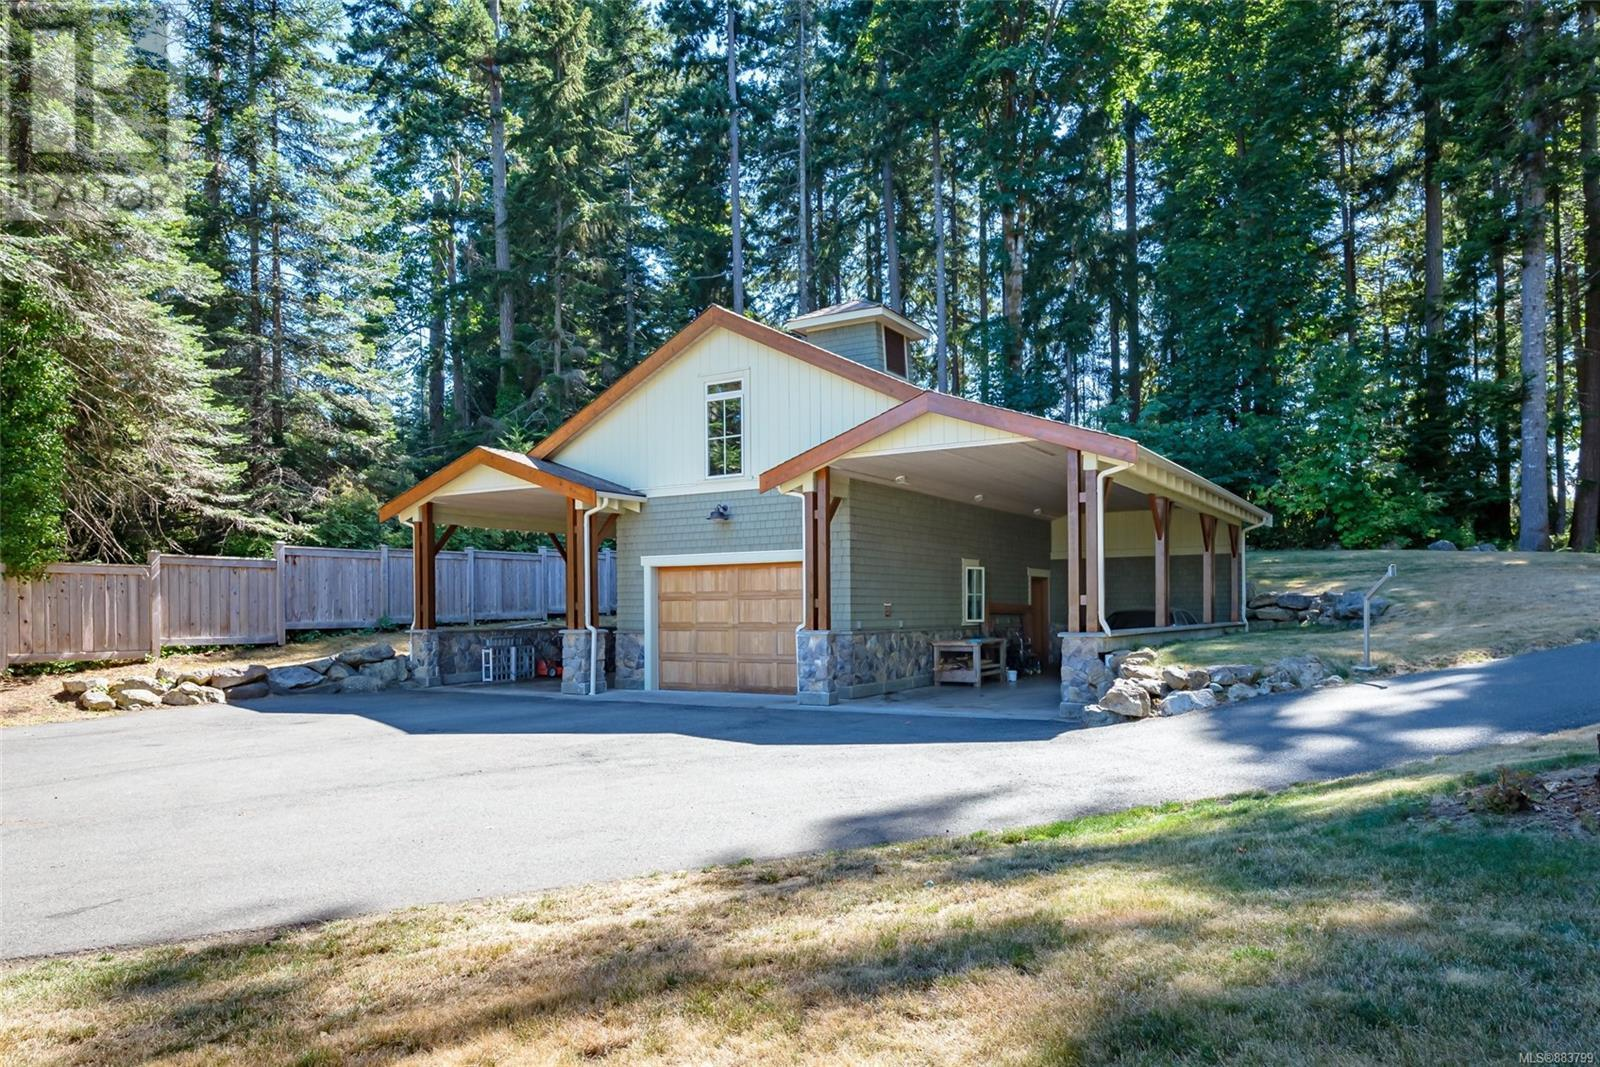 MLS® #883799 - Courtenay House For sale Image #83